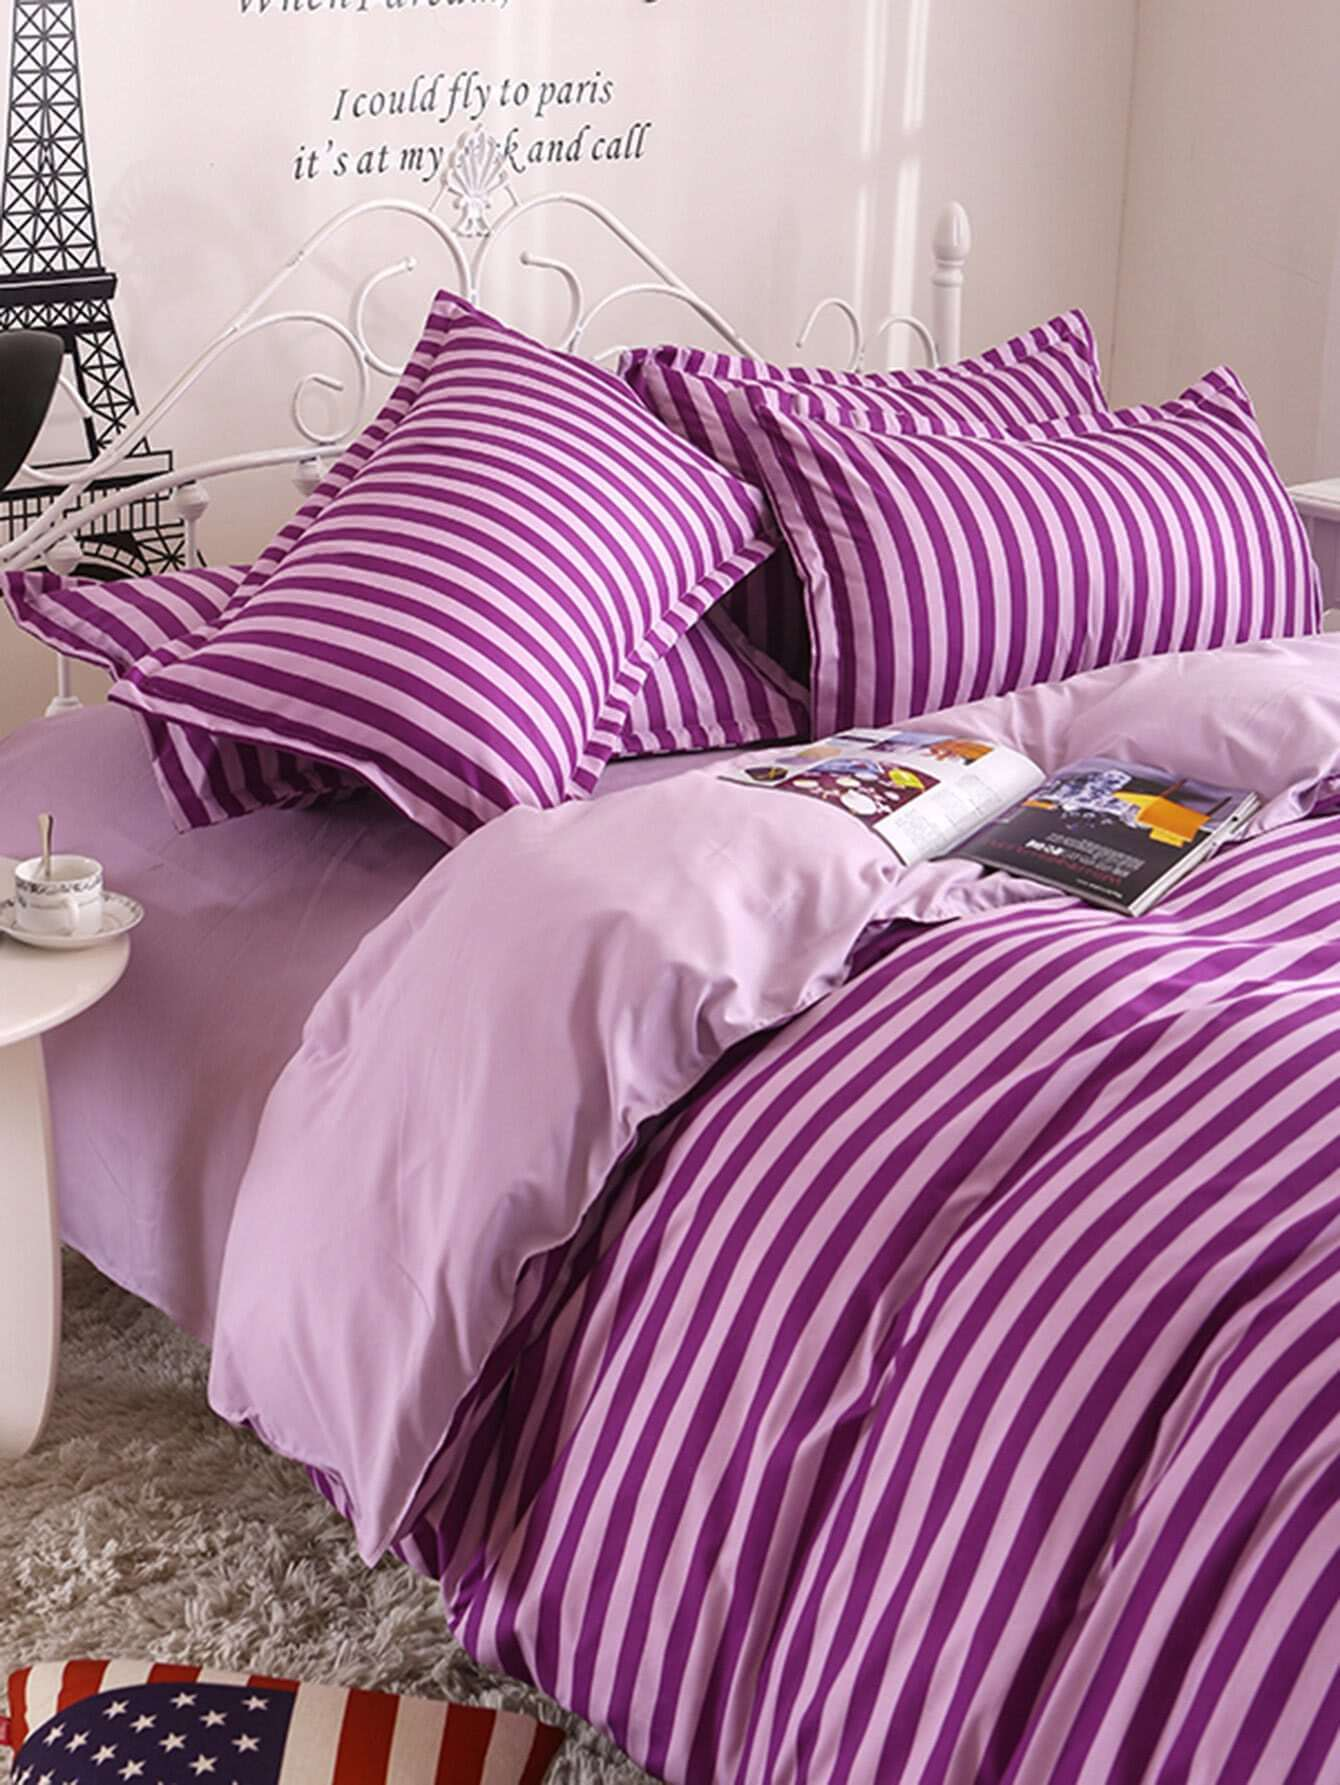 2 0m 4pcs Striped Duvet Cover Set